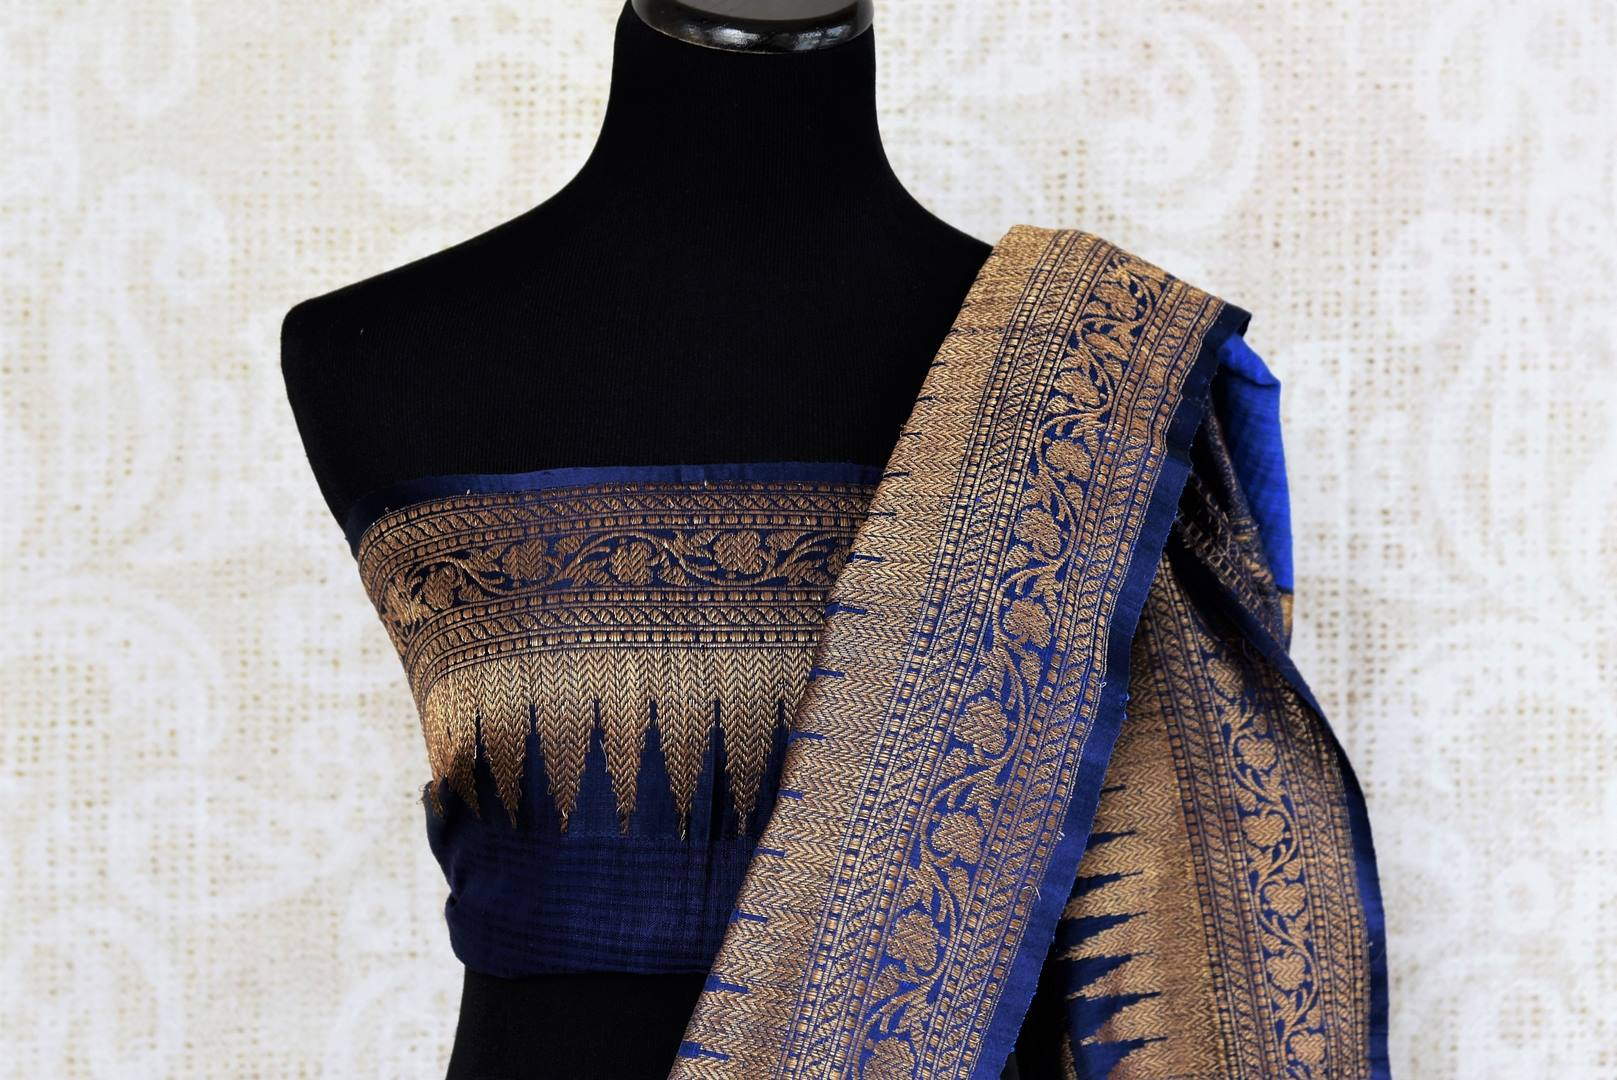 Buy traditional ink blue tussar katan Banarasi saree online in USA with zari border. The saree is a perfect drape for a rich ethnic Indian look. Spoil yourself with an exquisite collection of Indian Banarasi saris in USA available at Pure Elegance Indian clothing store. -blouse pallu